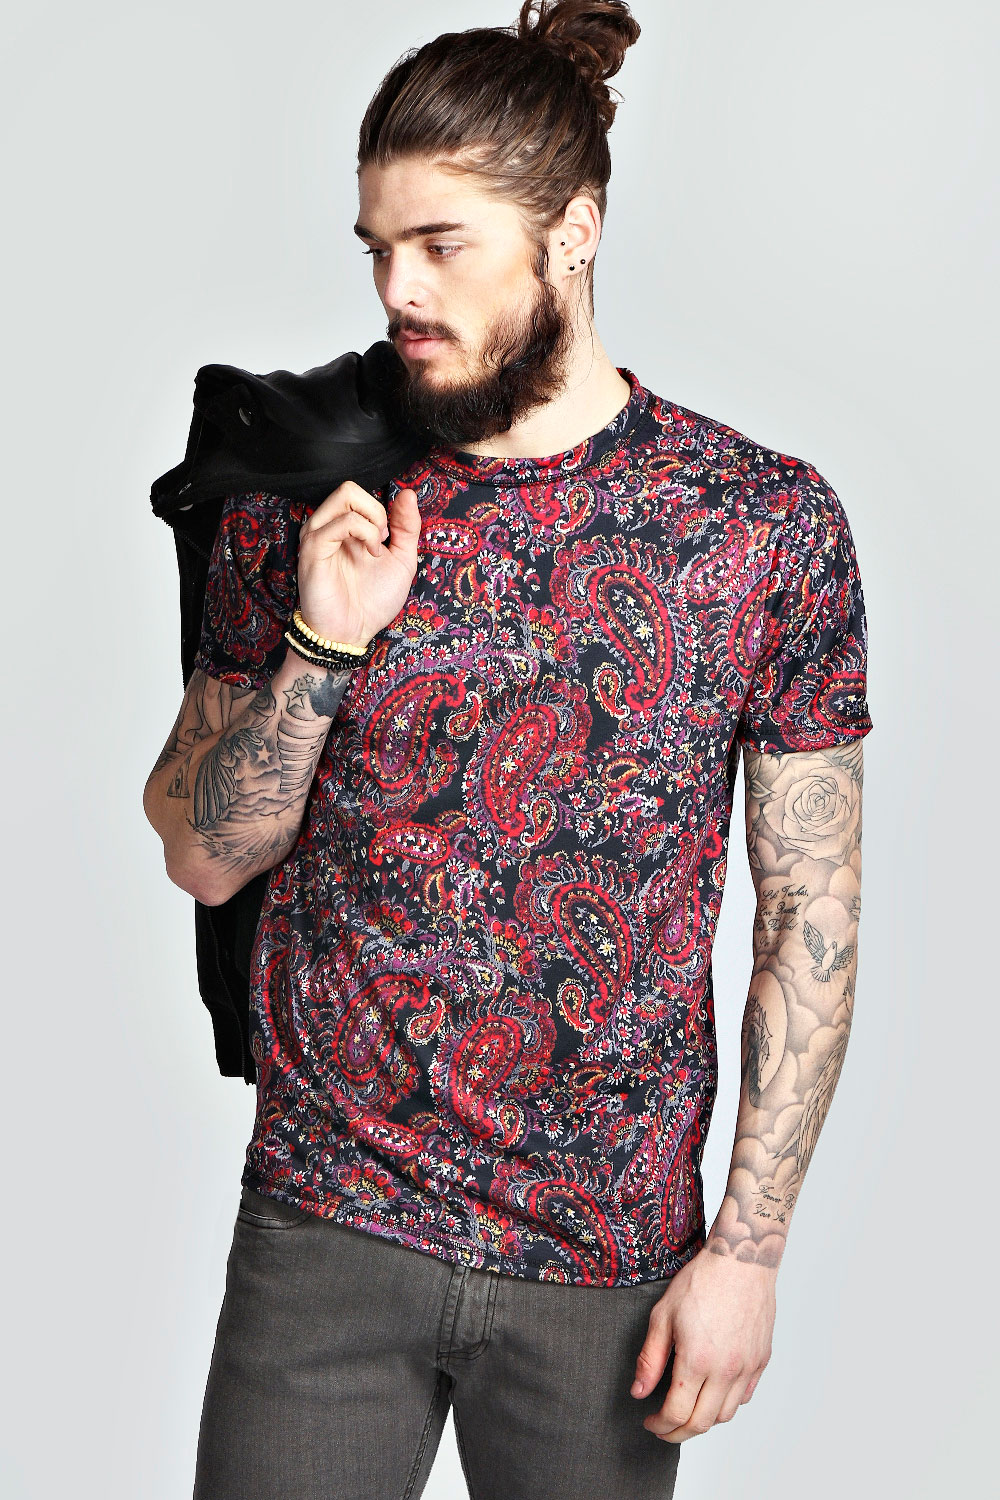 boohoo mens all over paisley printed t shirt in navy ebay. Black Bedroom Furniture Sets. Home Design Ideas